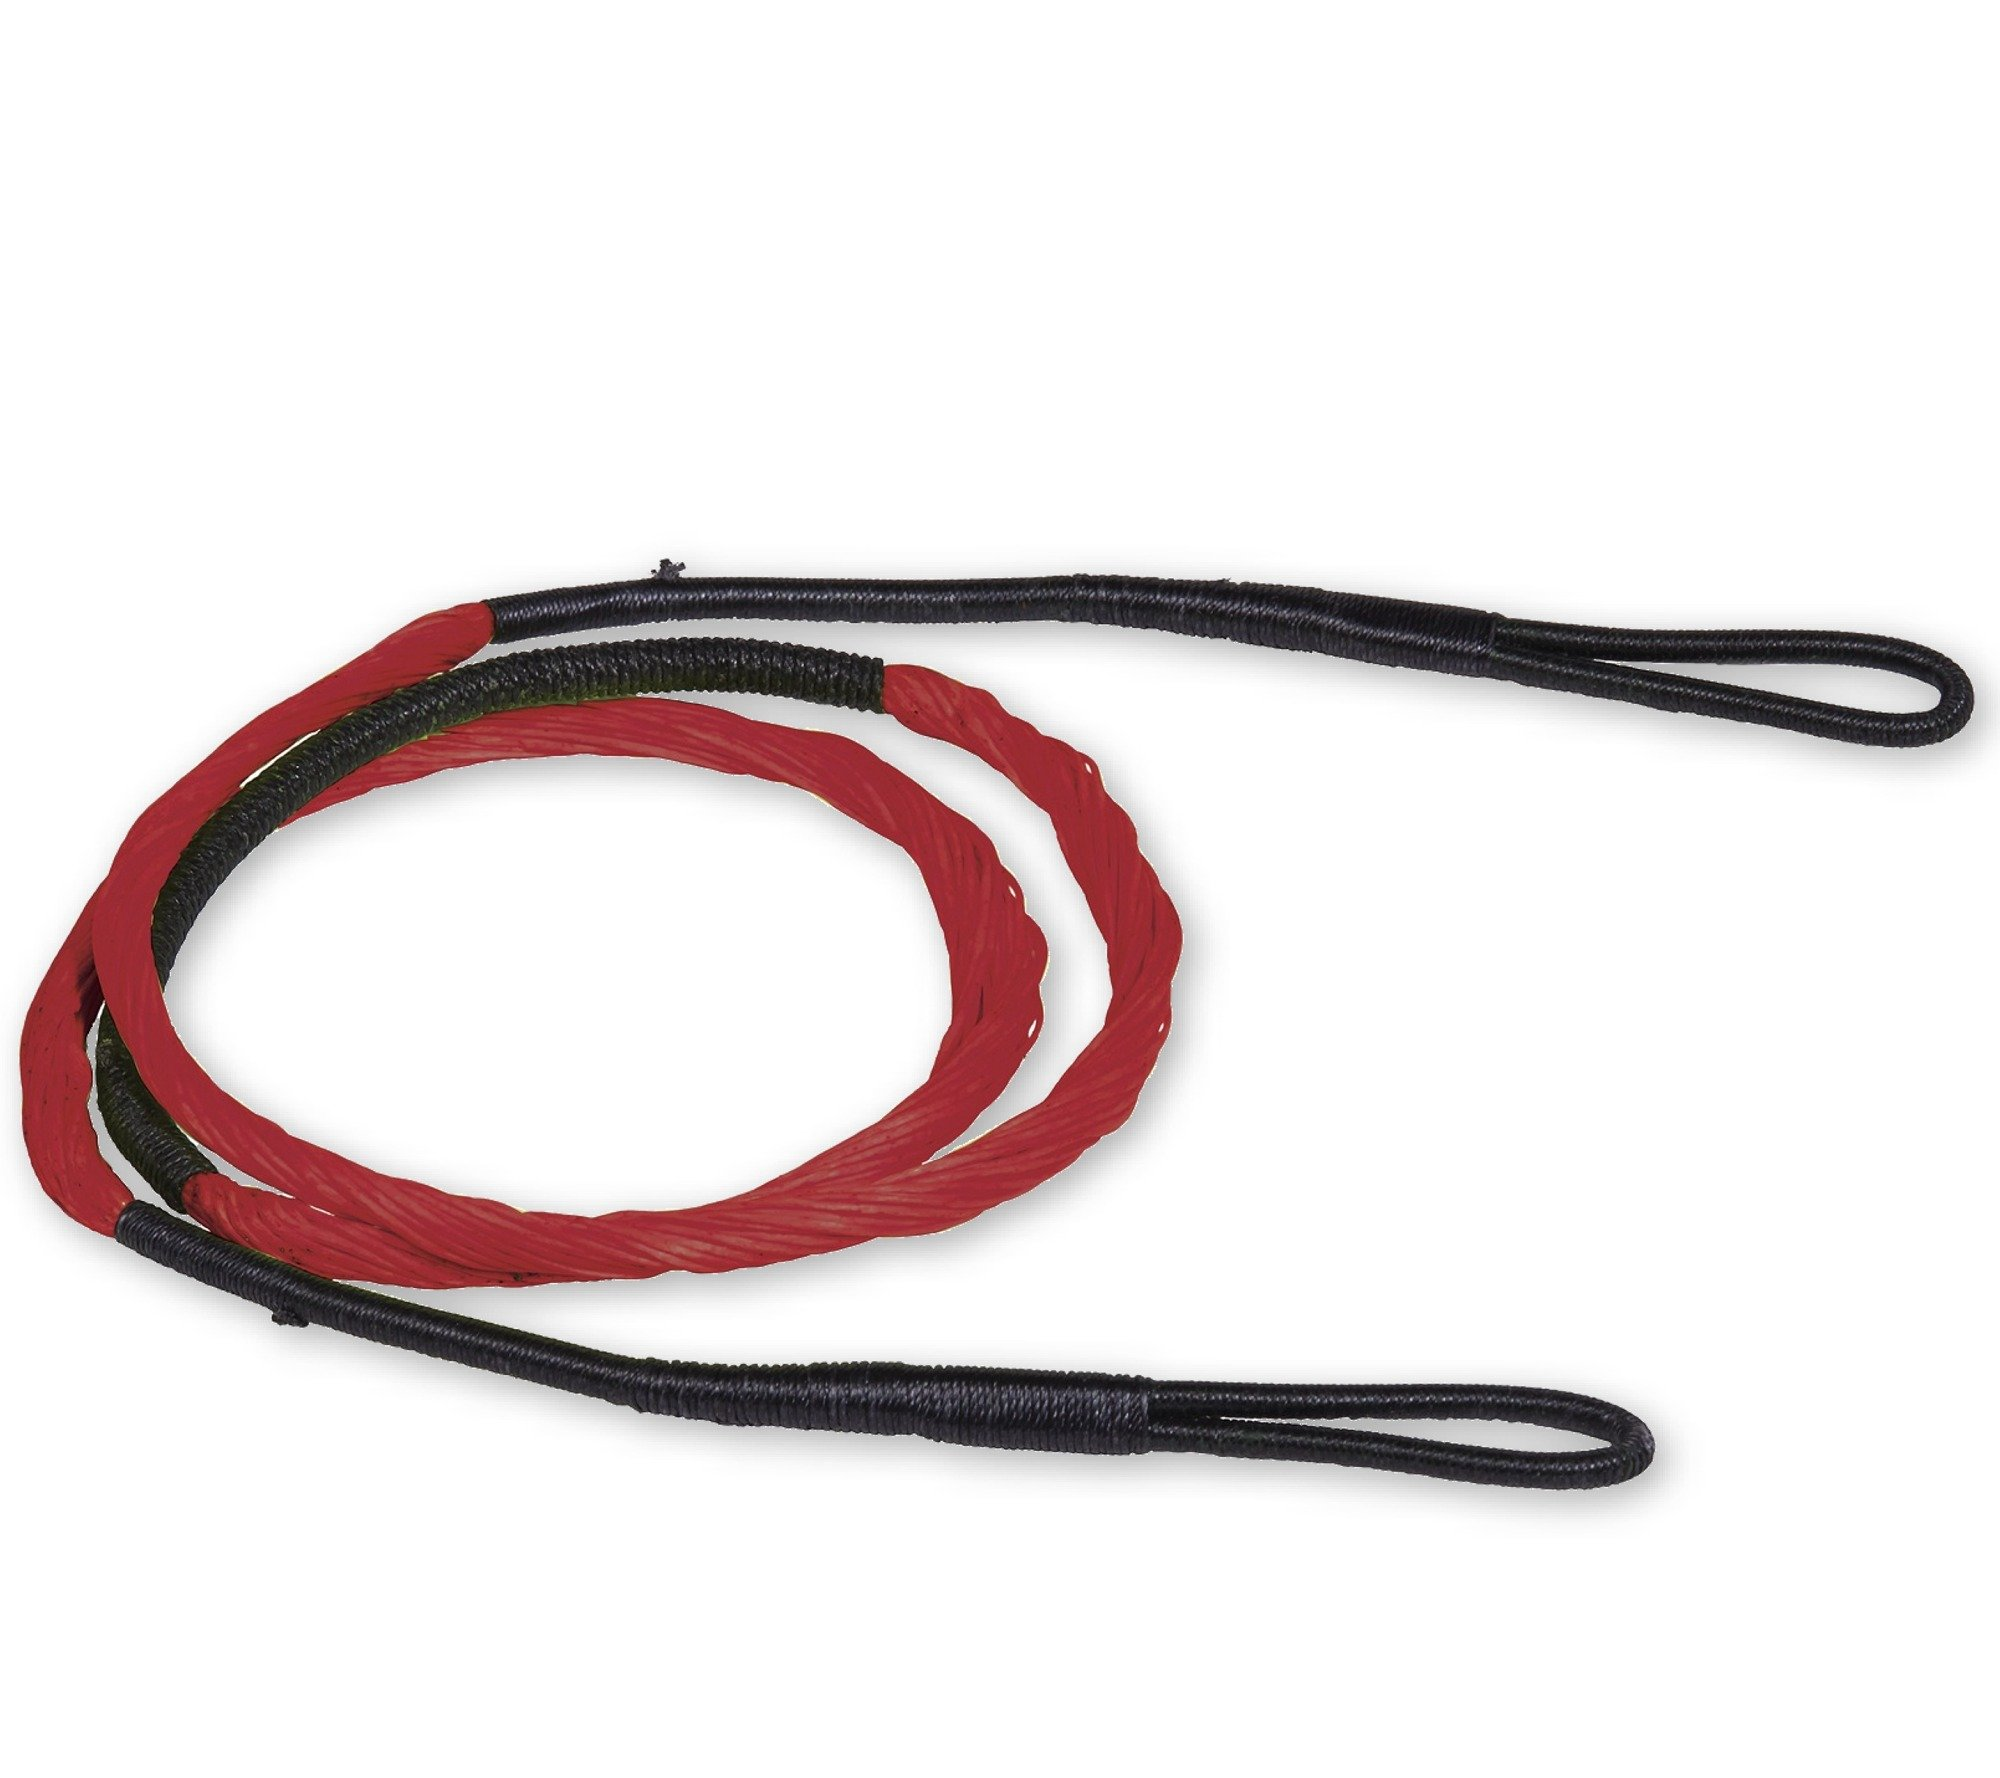 Excalibur Crossbow Micro Replacement String, Red